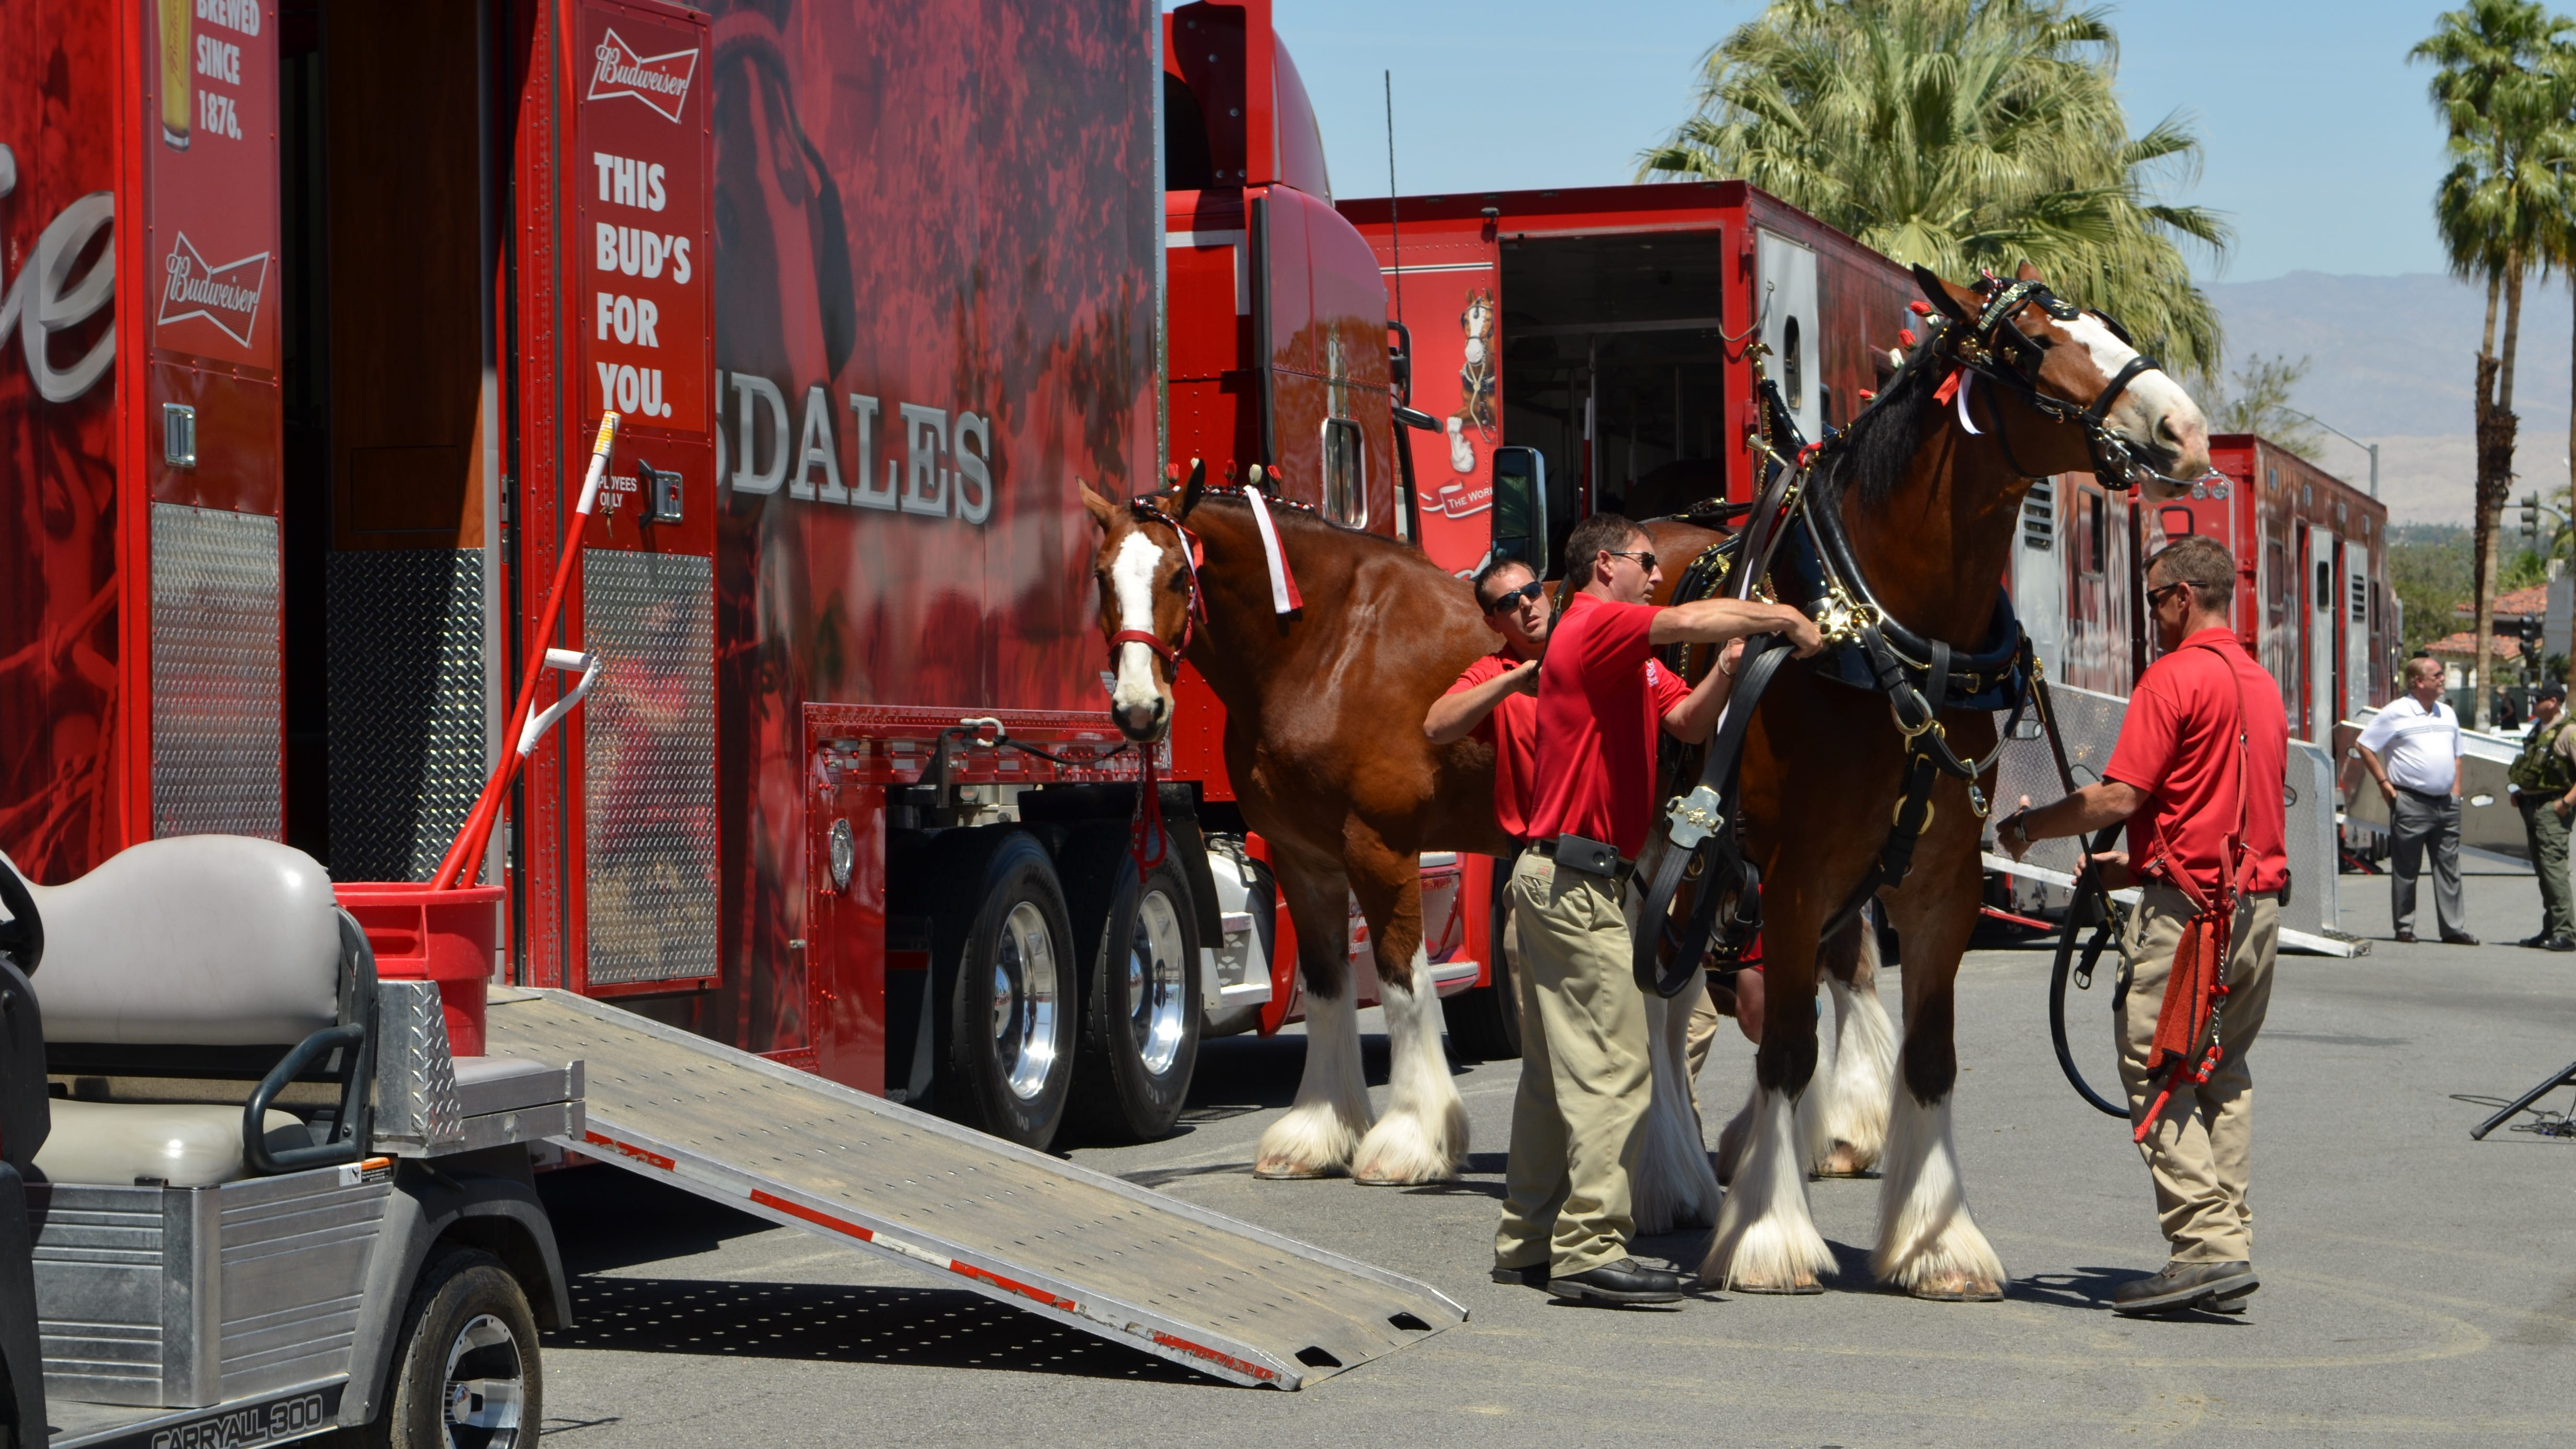 Budweiser Clydesdales make their way to Stagecoach festival